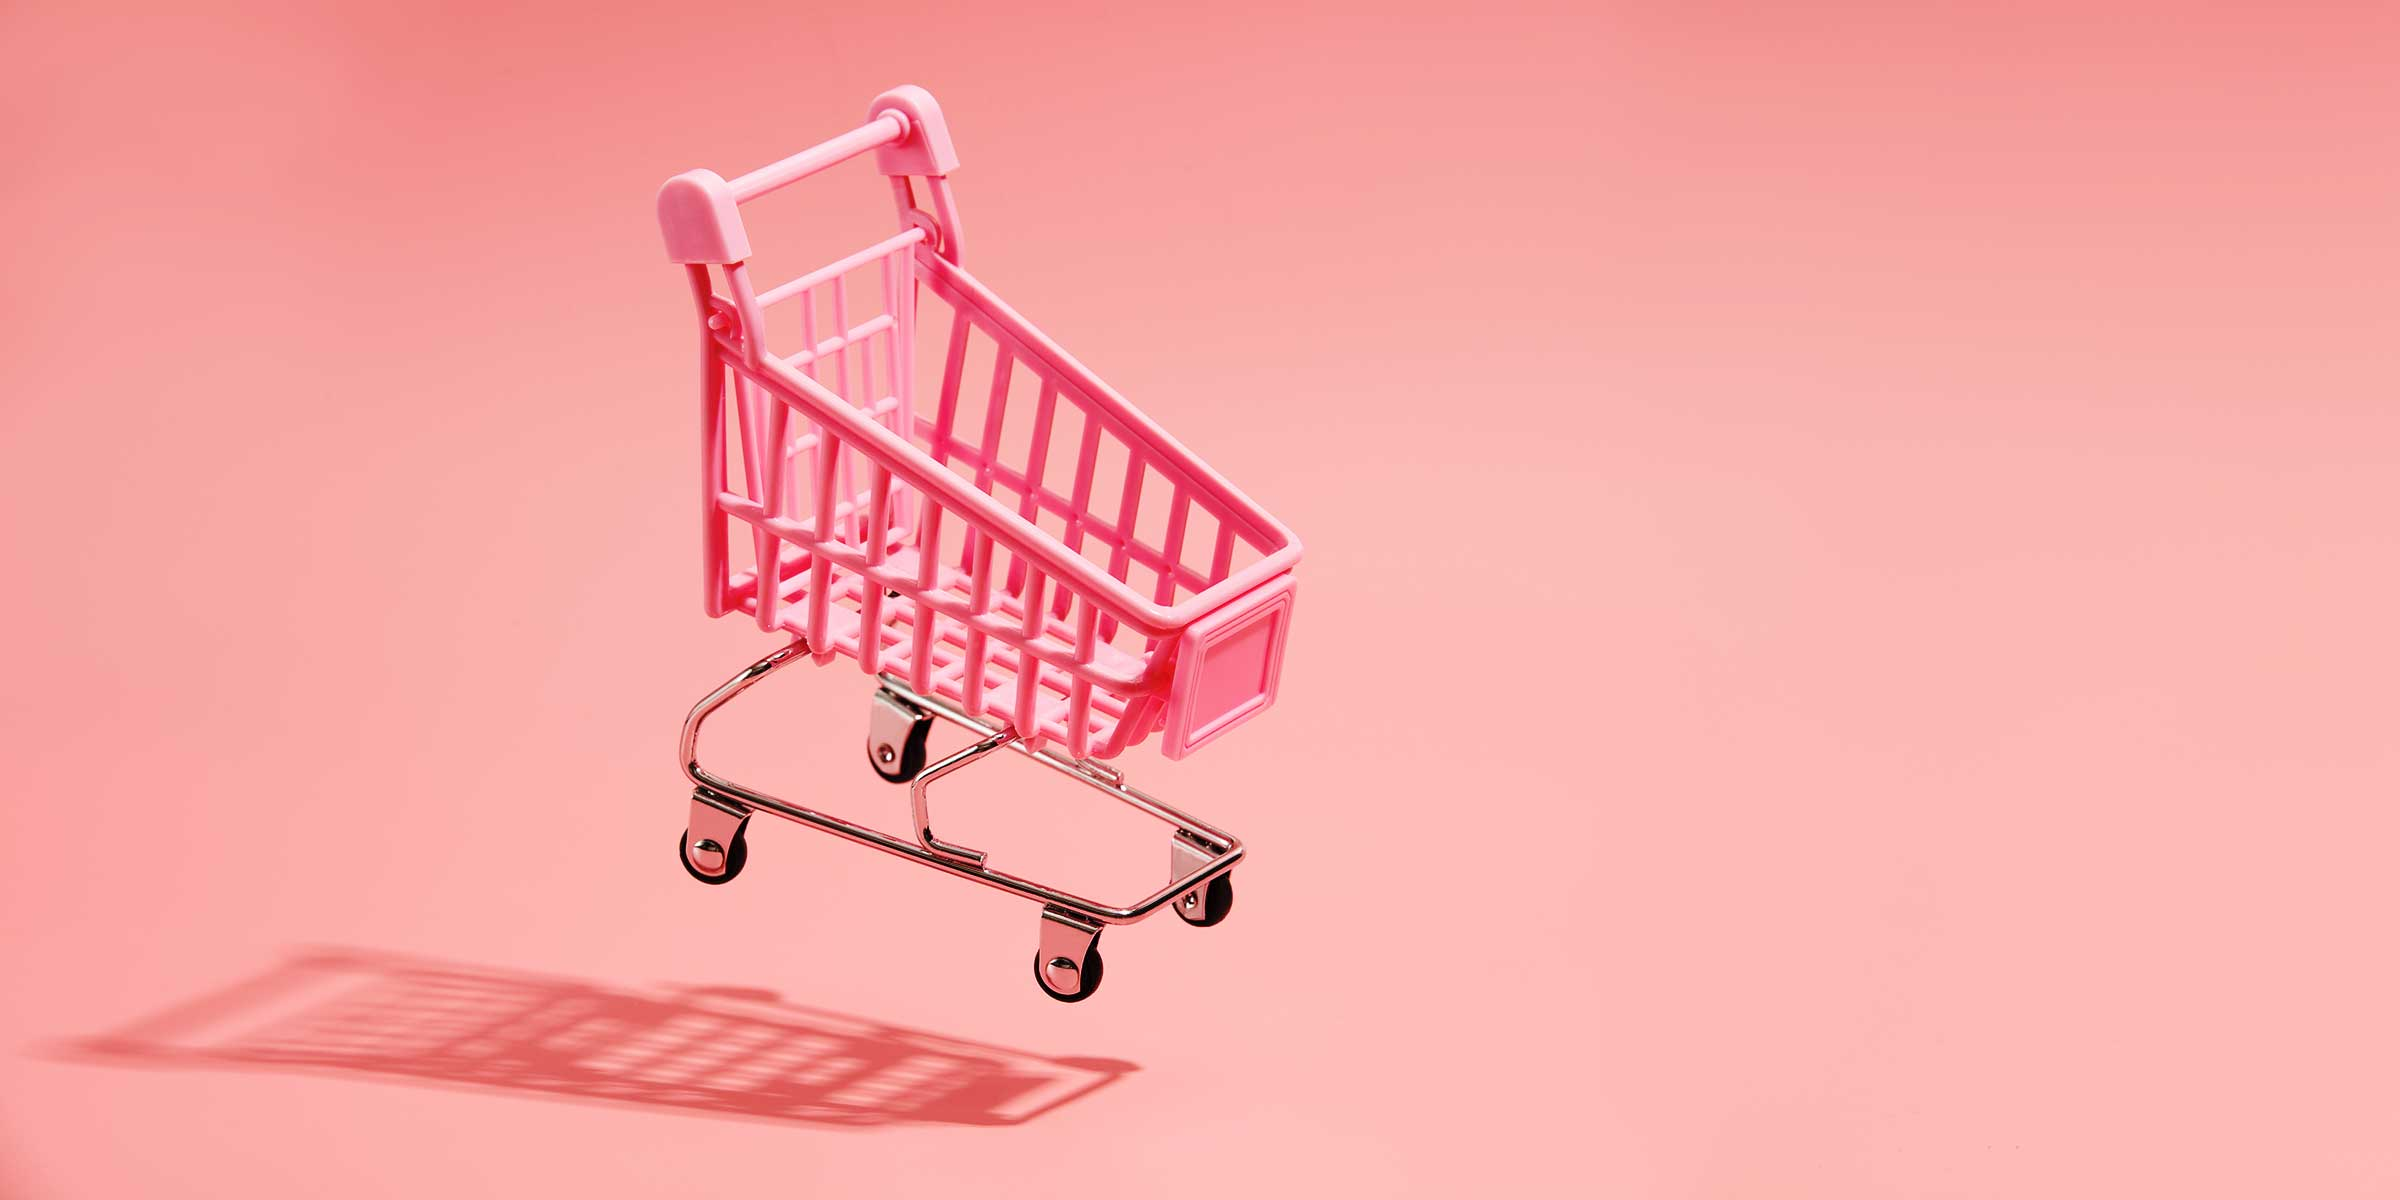 3-e-commerce-trends-to-look-out-for-in-2021